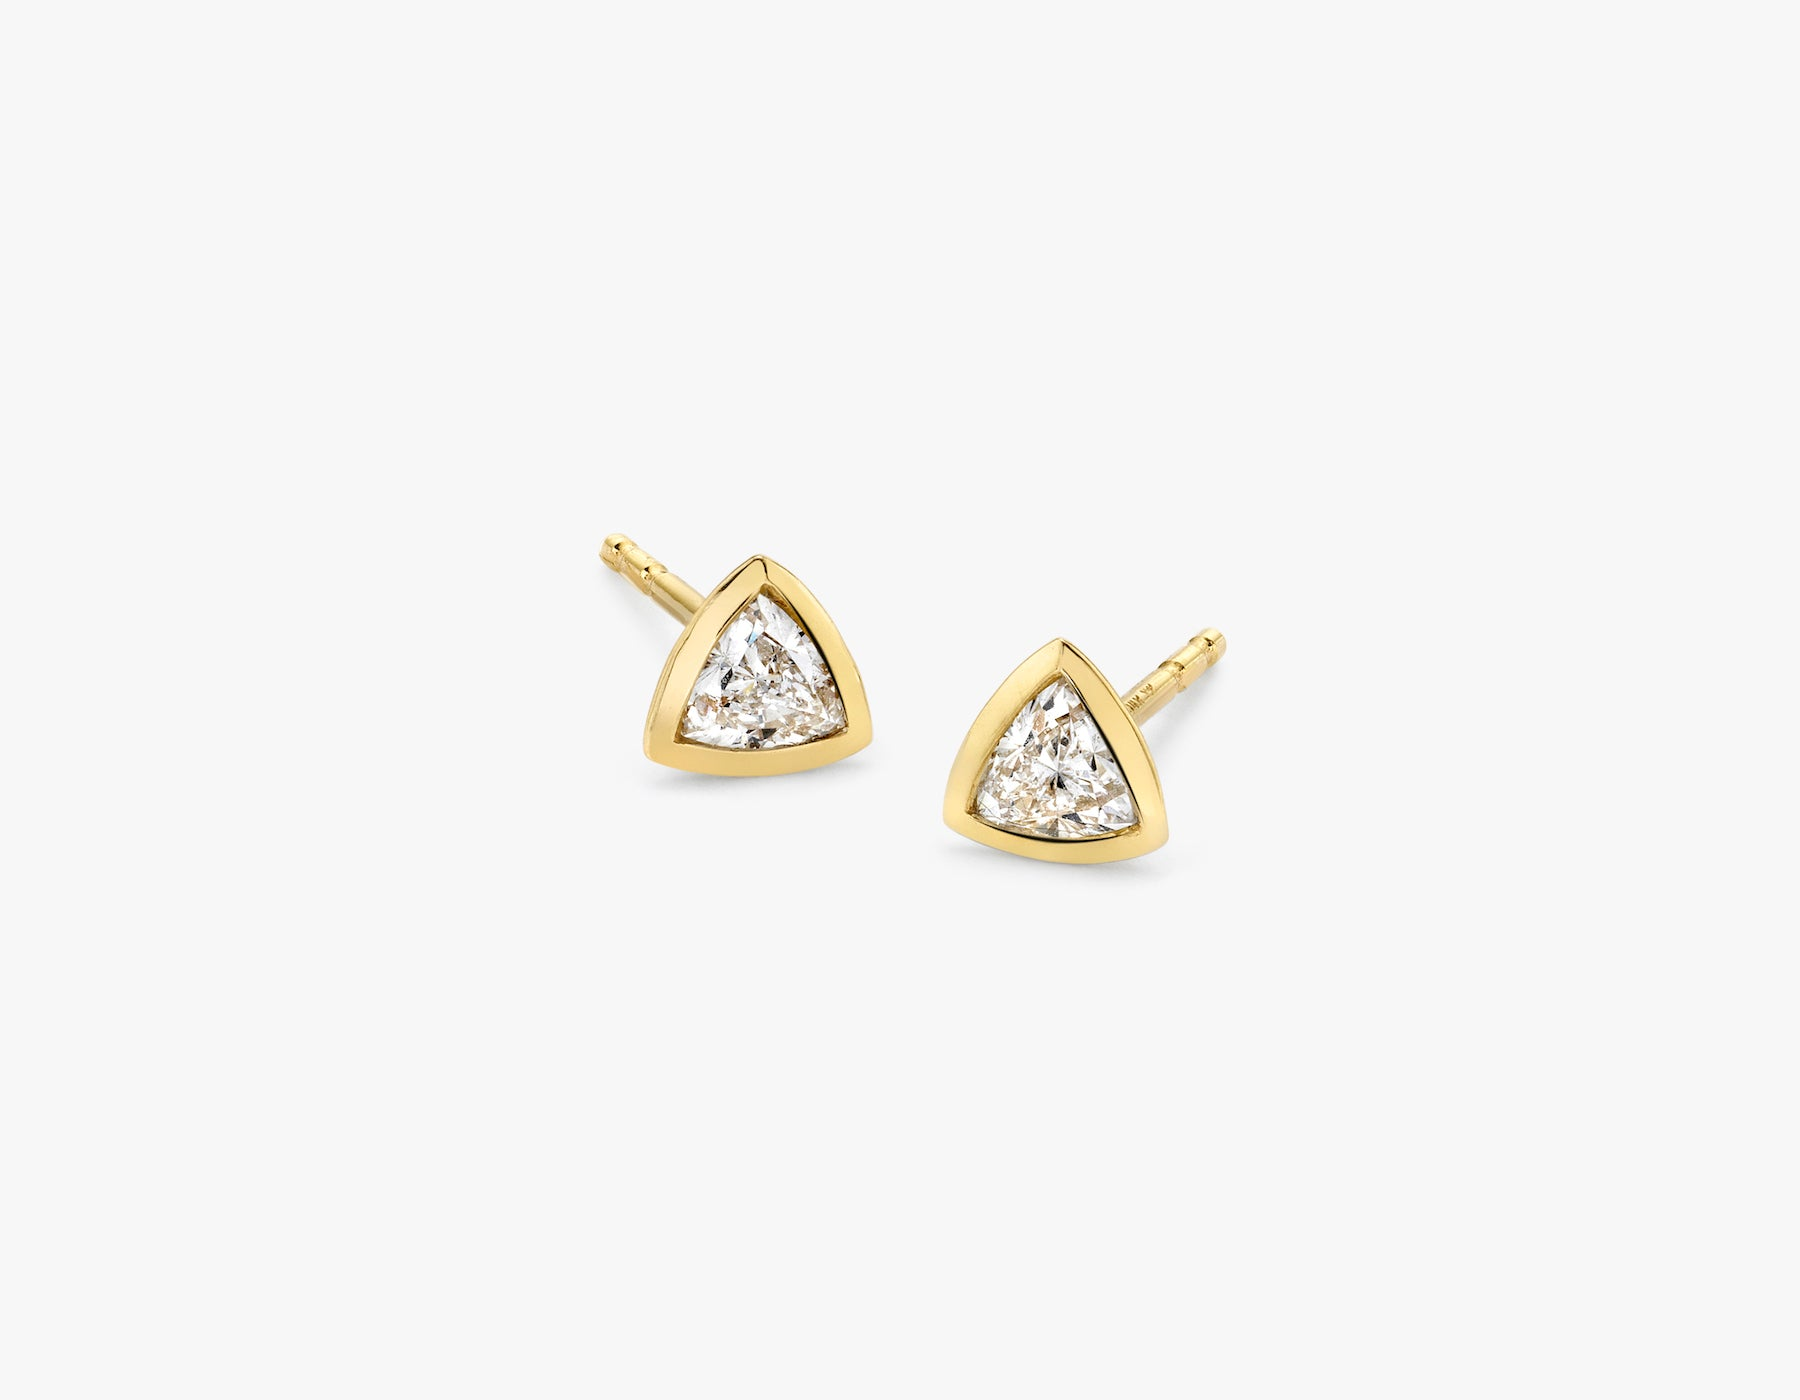 Vrai simple minimalist Trillion Diamond Bezel Earrings, 14K Yellow Gold